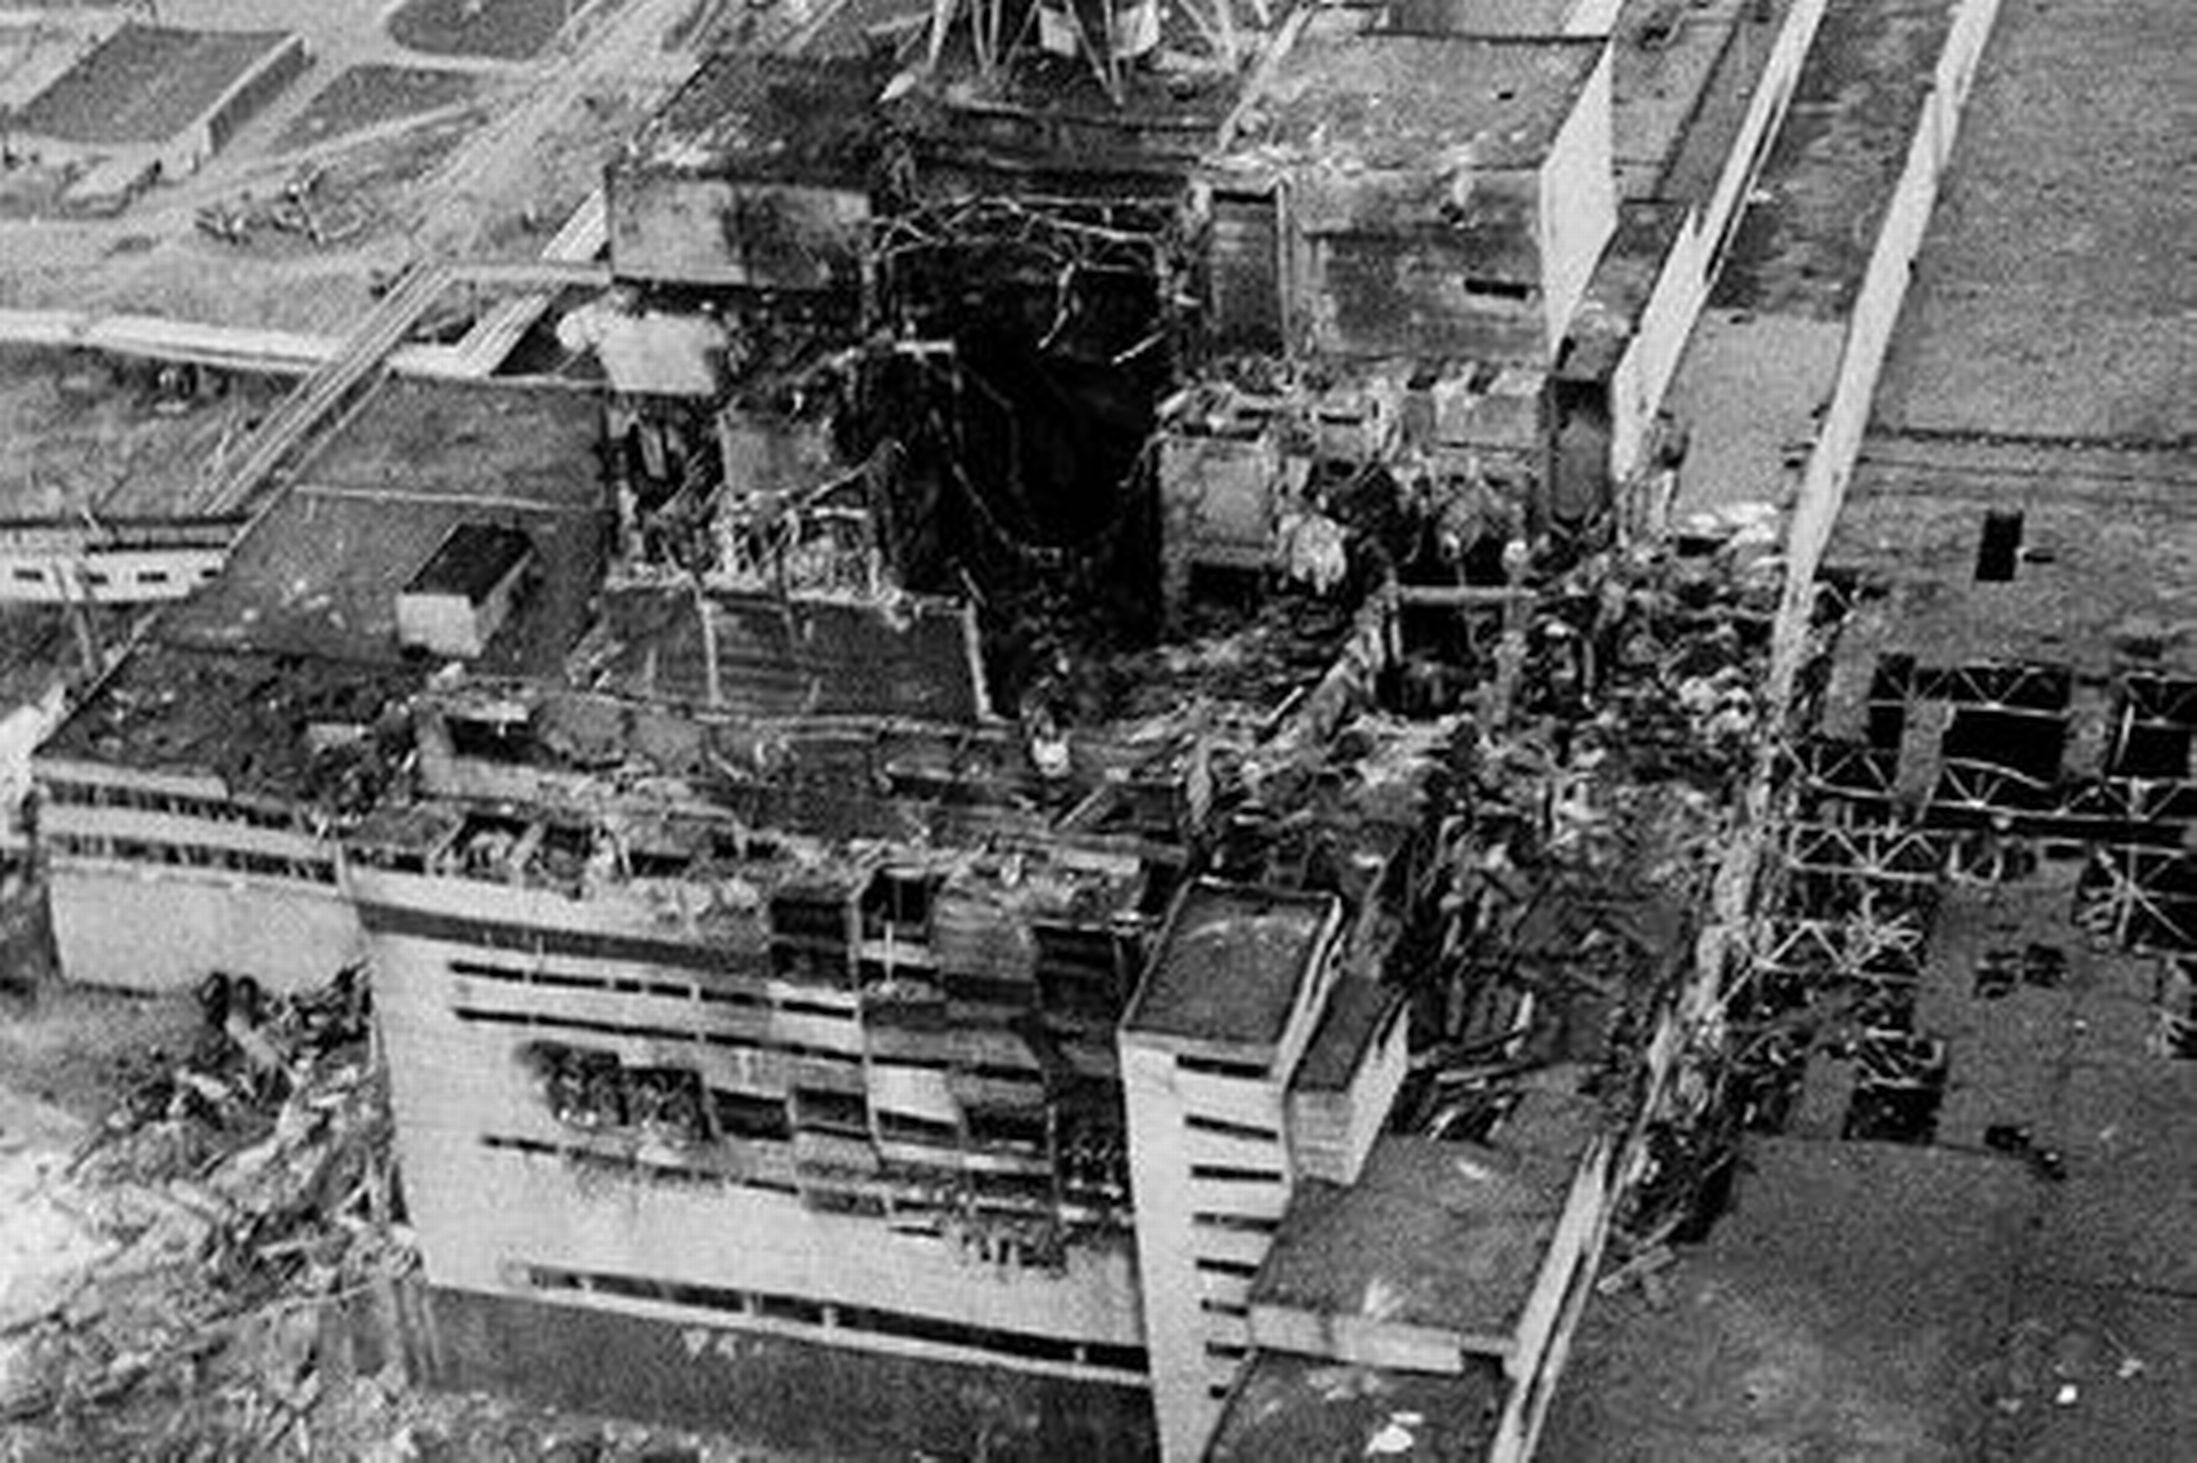 The explosion at the Chernobyl nuclear power plant